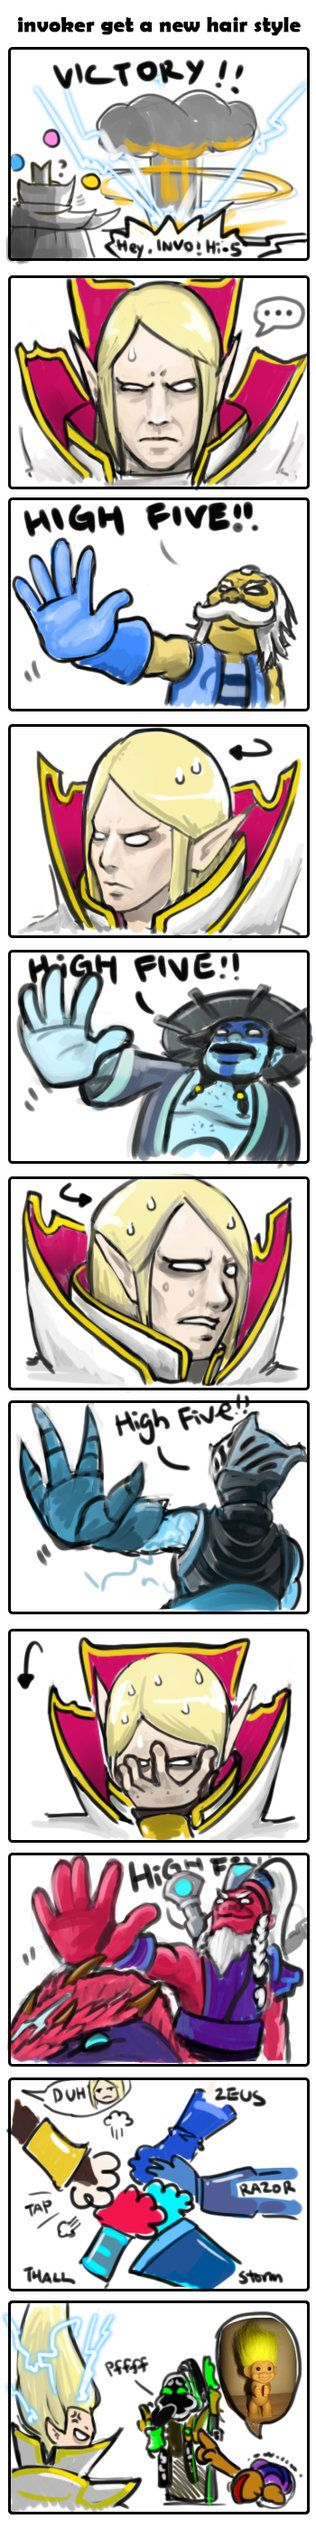 How Invoker's immortal was made